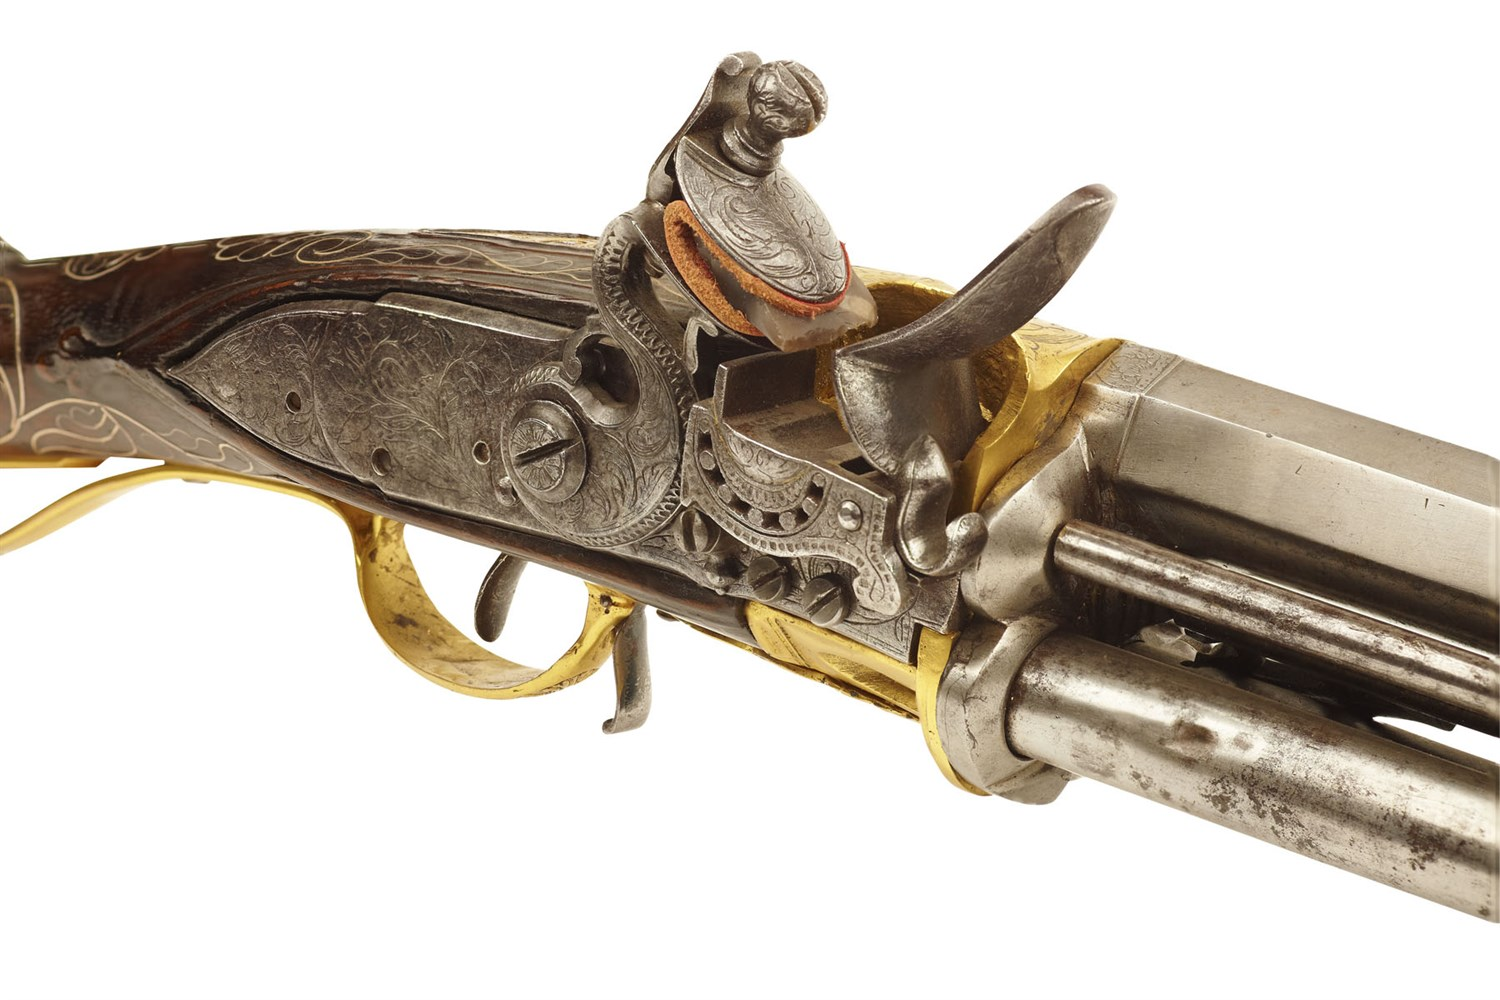 Lot 41 - RARE INDIAN FLINTLOCK TURN ABOUT REPEATING